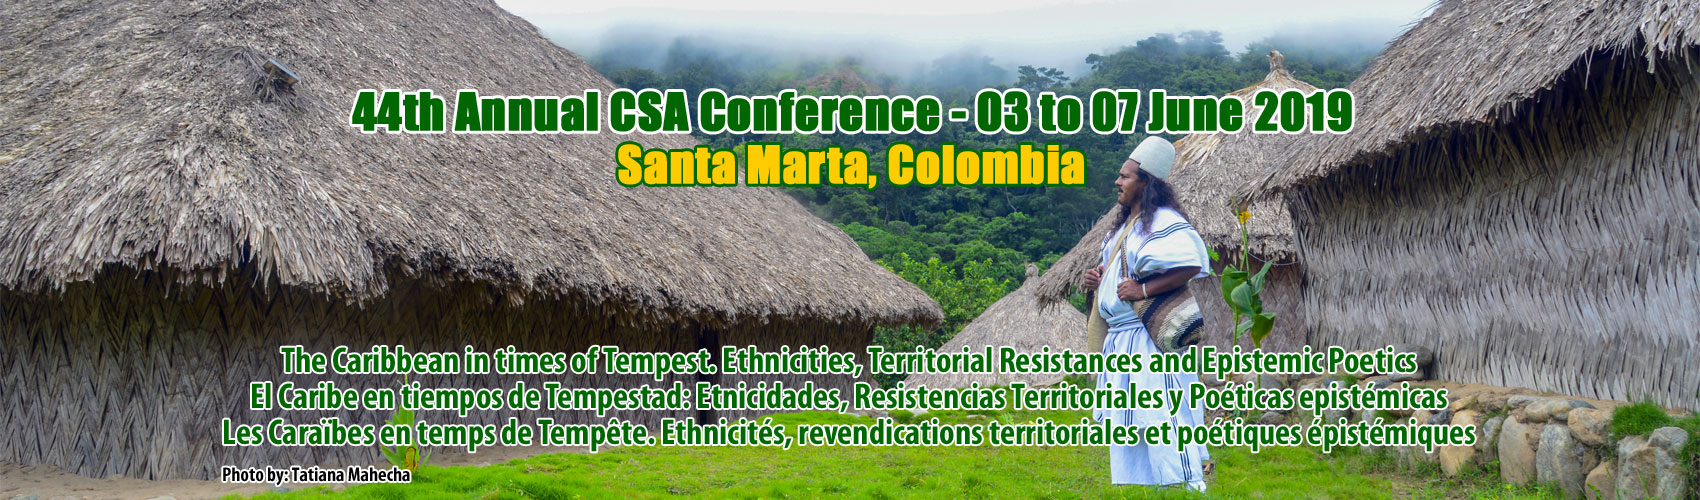 2019 Caribbean Studies Association Conference